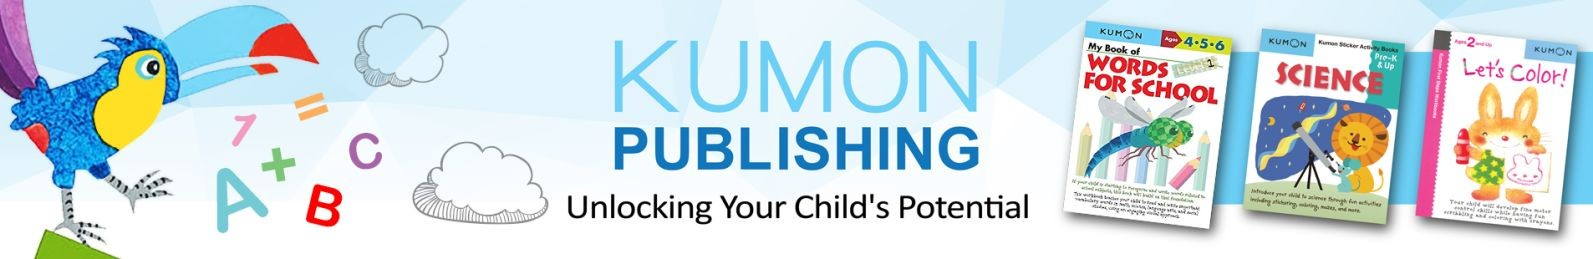 Kumon Publishing INA